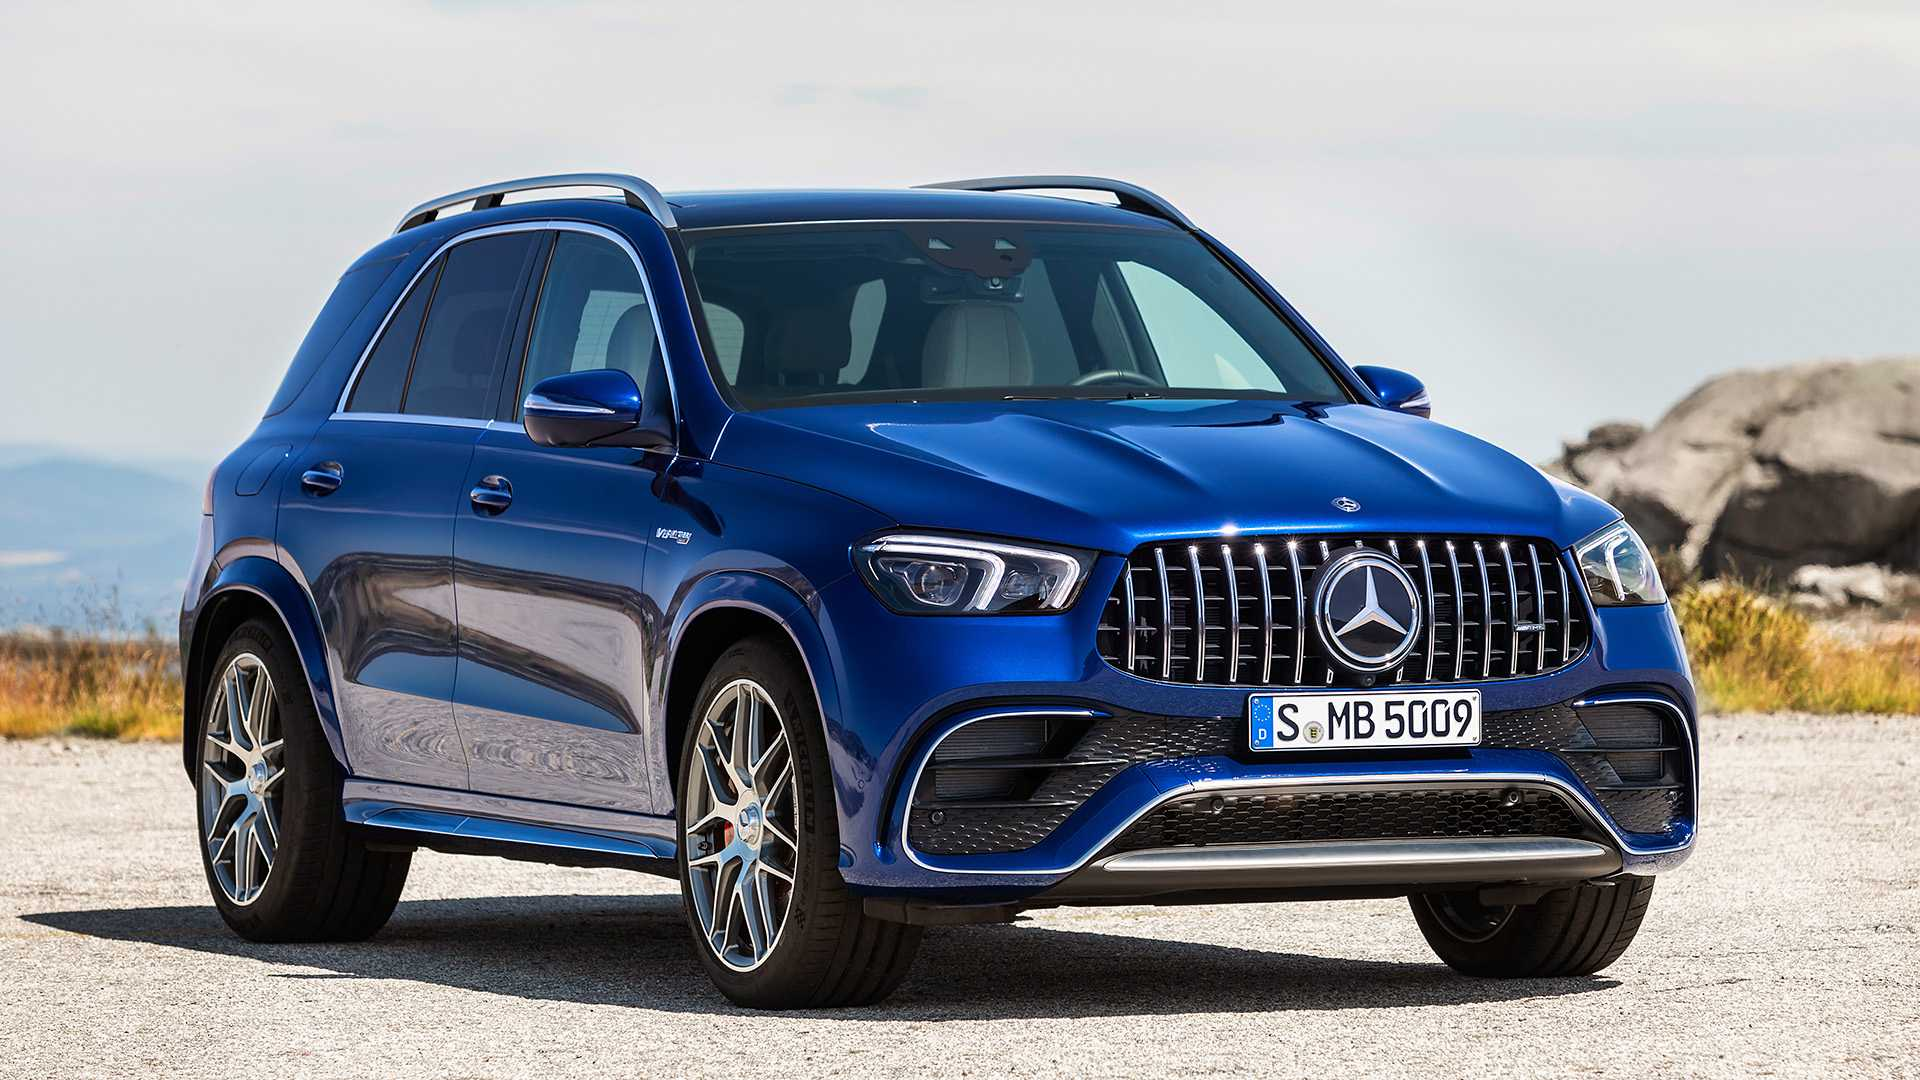 2020 Mercedes GLE Price and Review